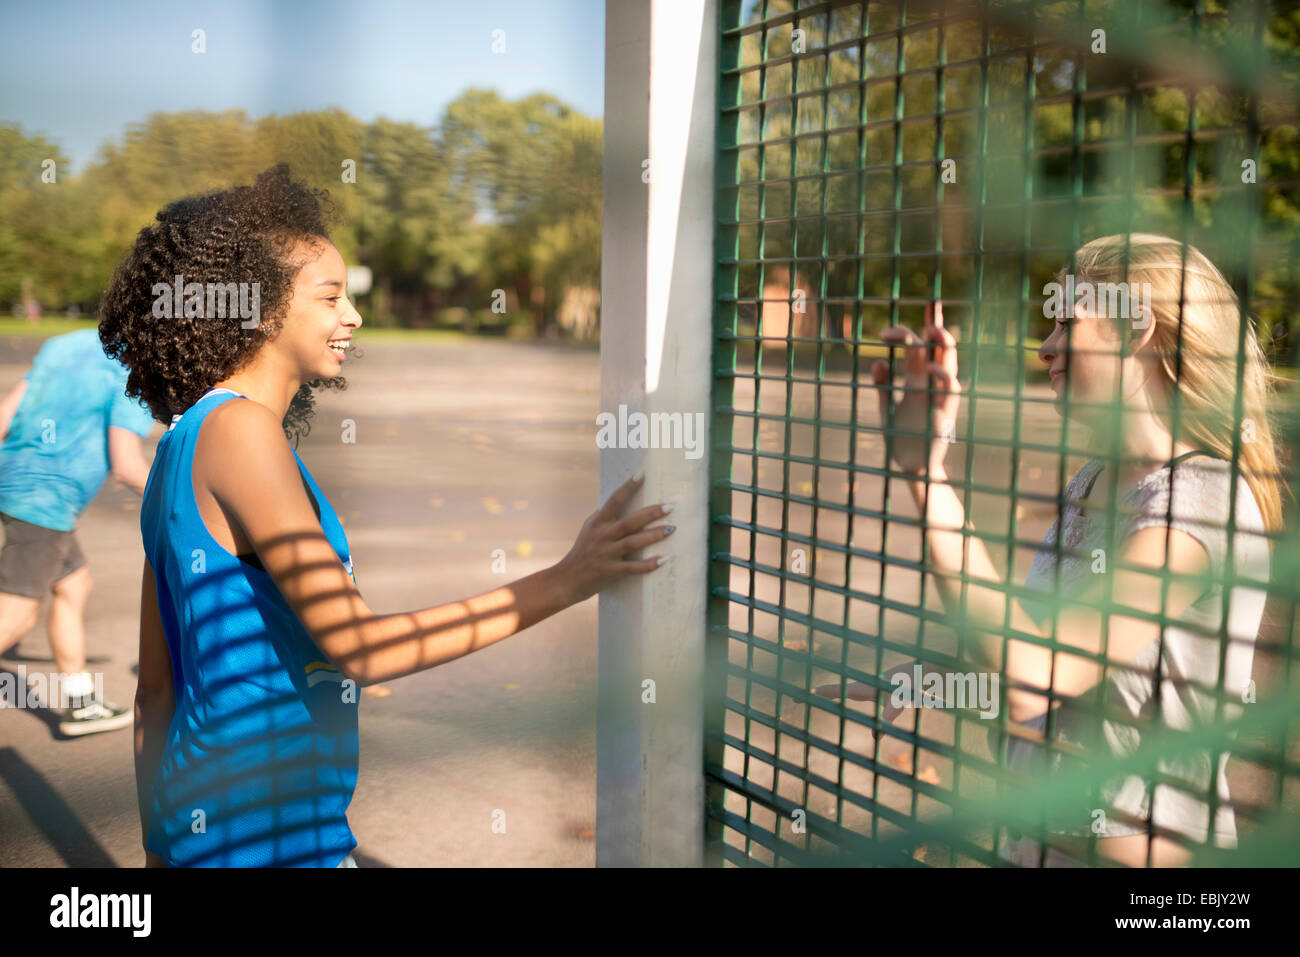 Two young female basketball players chatting on opposite wire fence - Stock Image